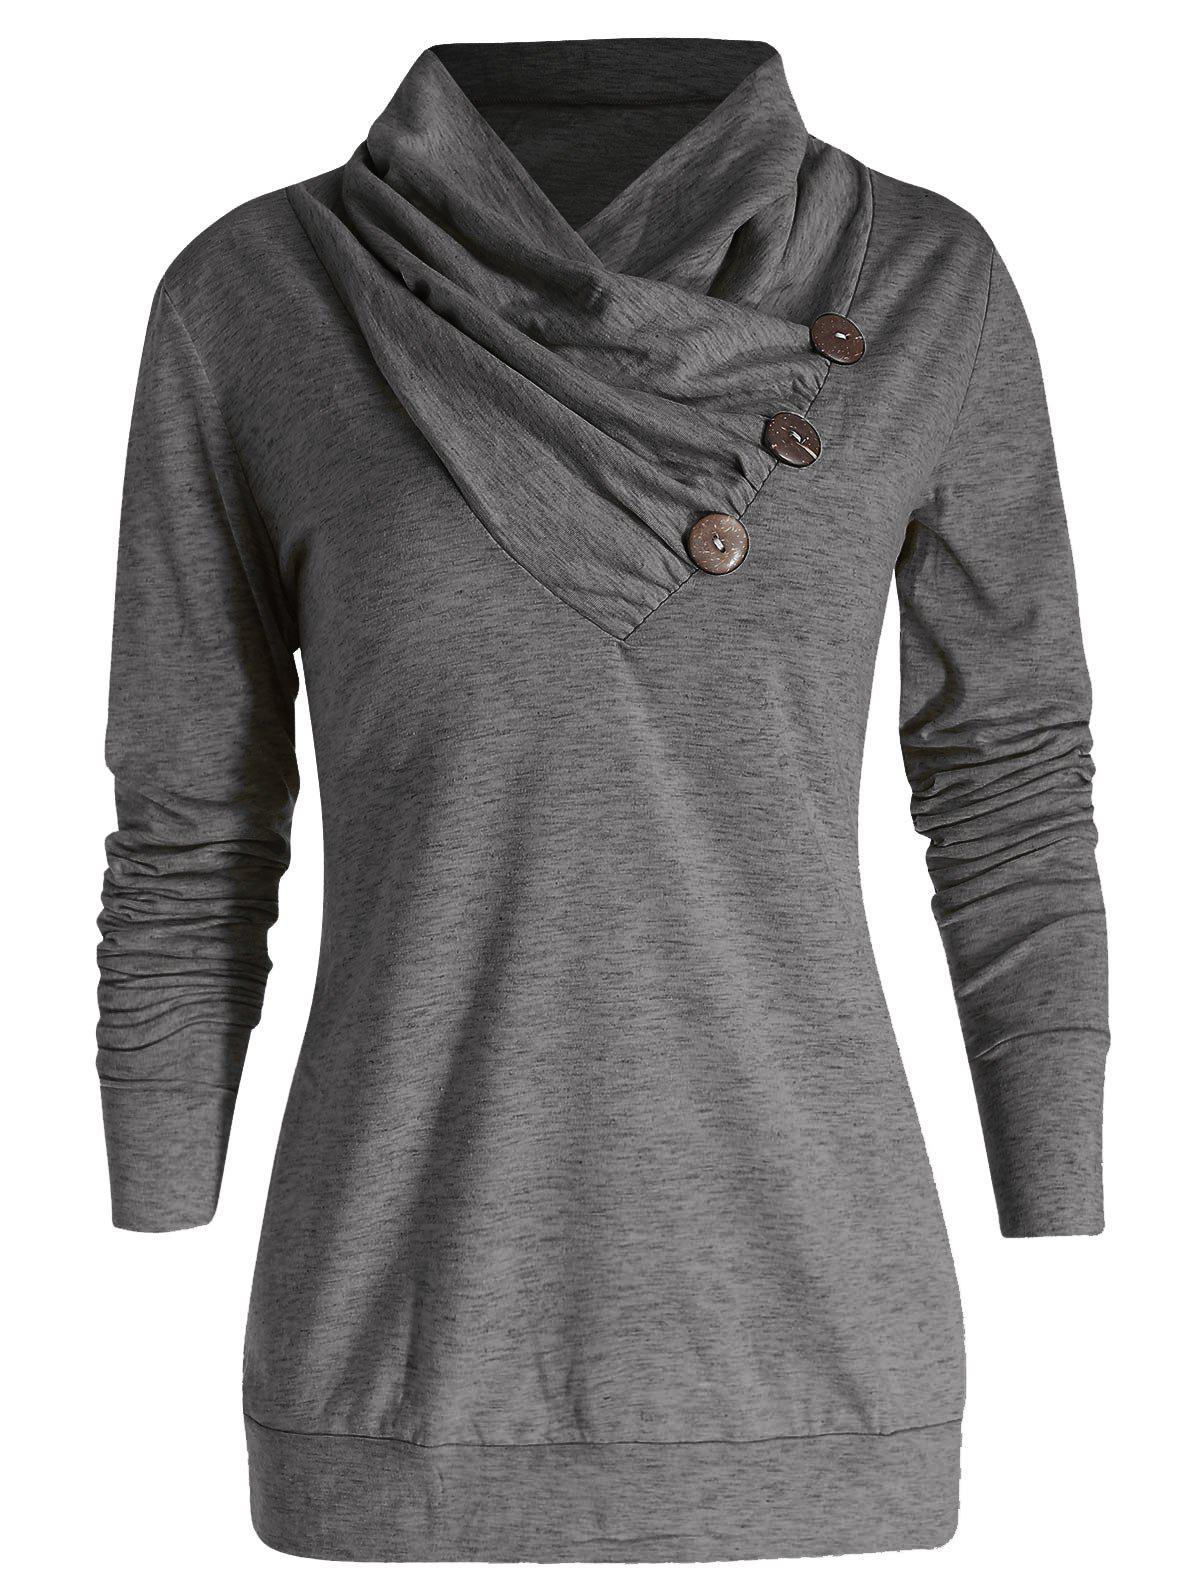 Best Cowl Neck Button Embellished T Shirt